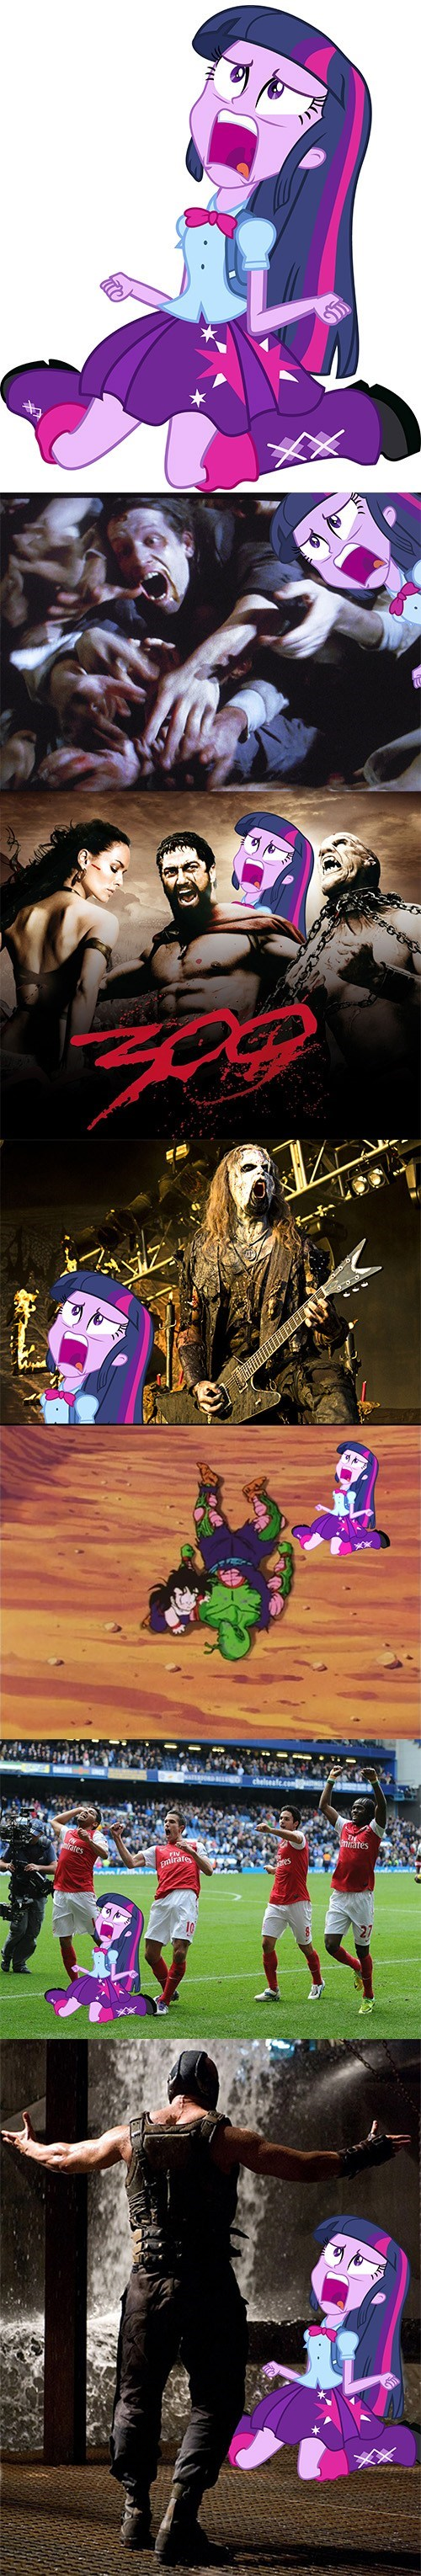 equestria girls,twilight sparkle,Memes,funny